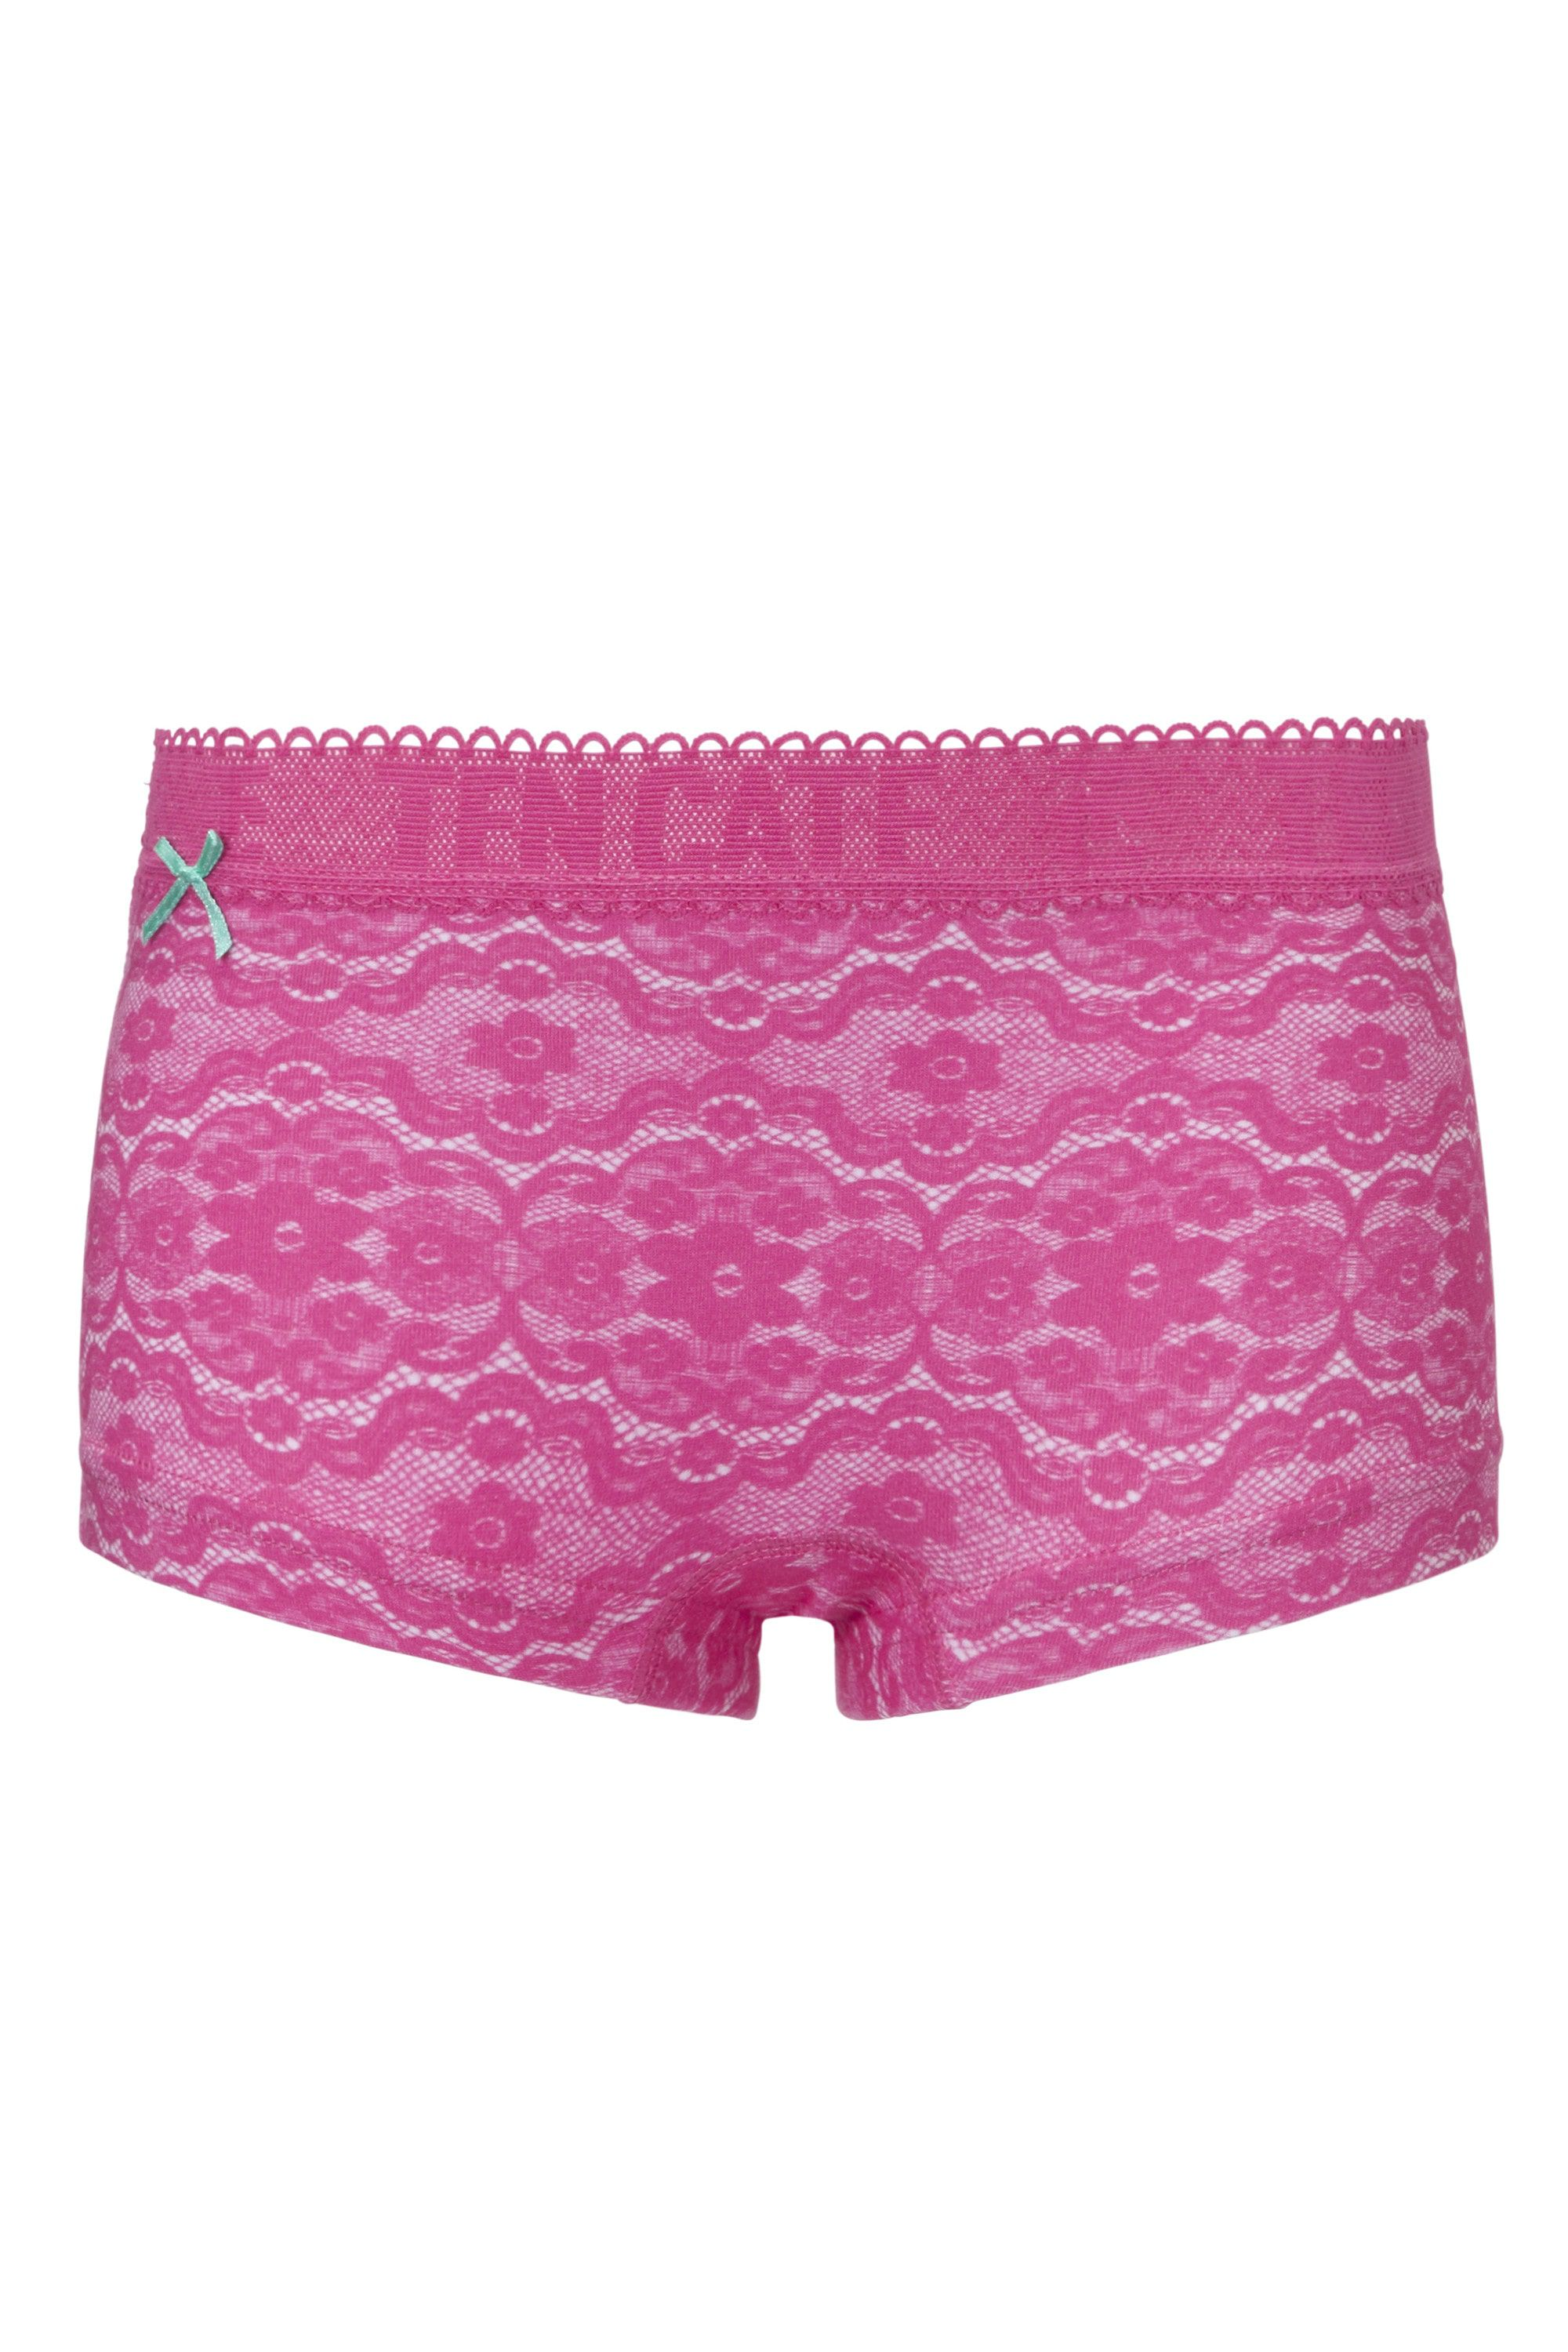 Ten Cate Girls Hipster 2600 Lace Pink